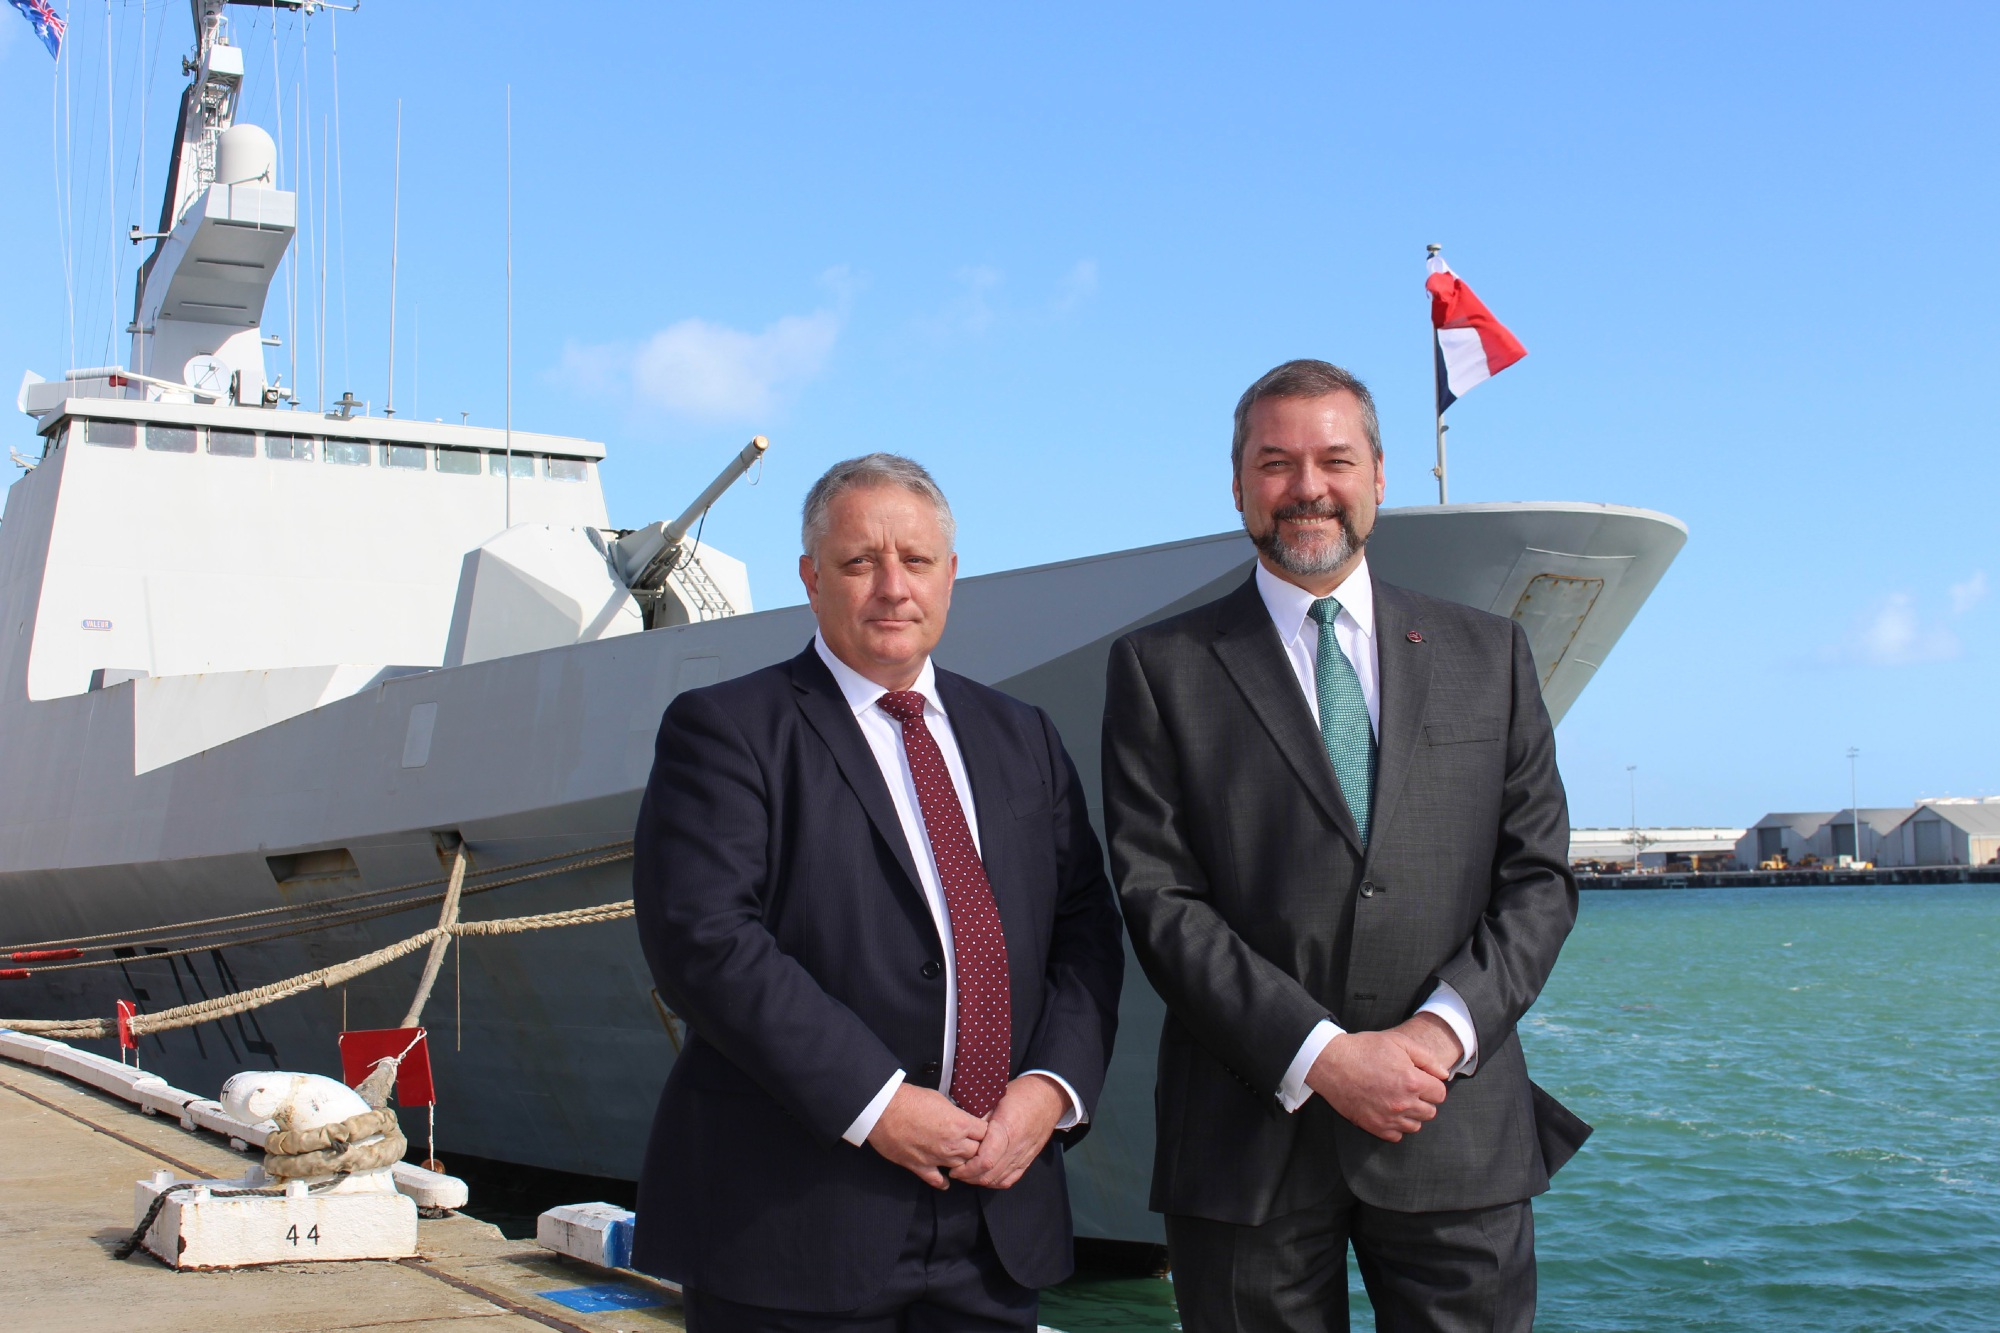 Brent Clark, DCNS's Australian director for strategy and communications, with Commerce Minister Michael Mischin in front of the French Navy frigate Guepratte, which docked in Fremantle to coincide with the event. Picture: Bryce Luff